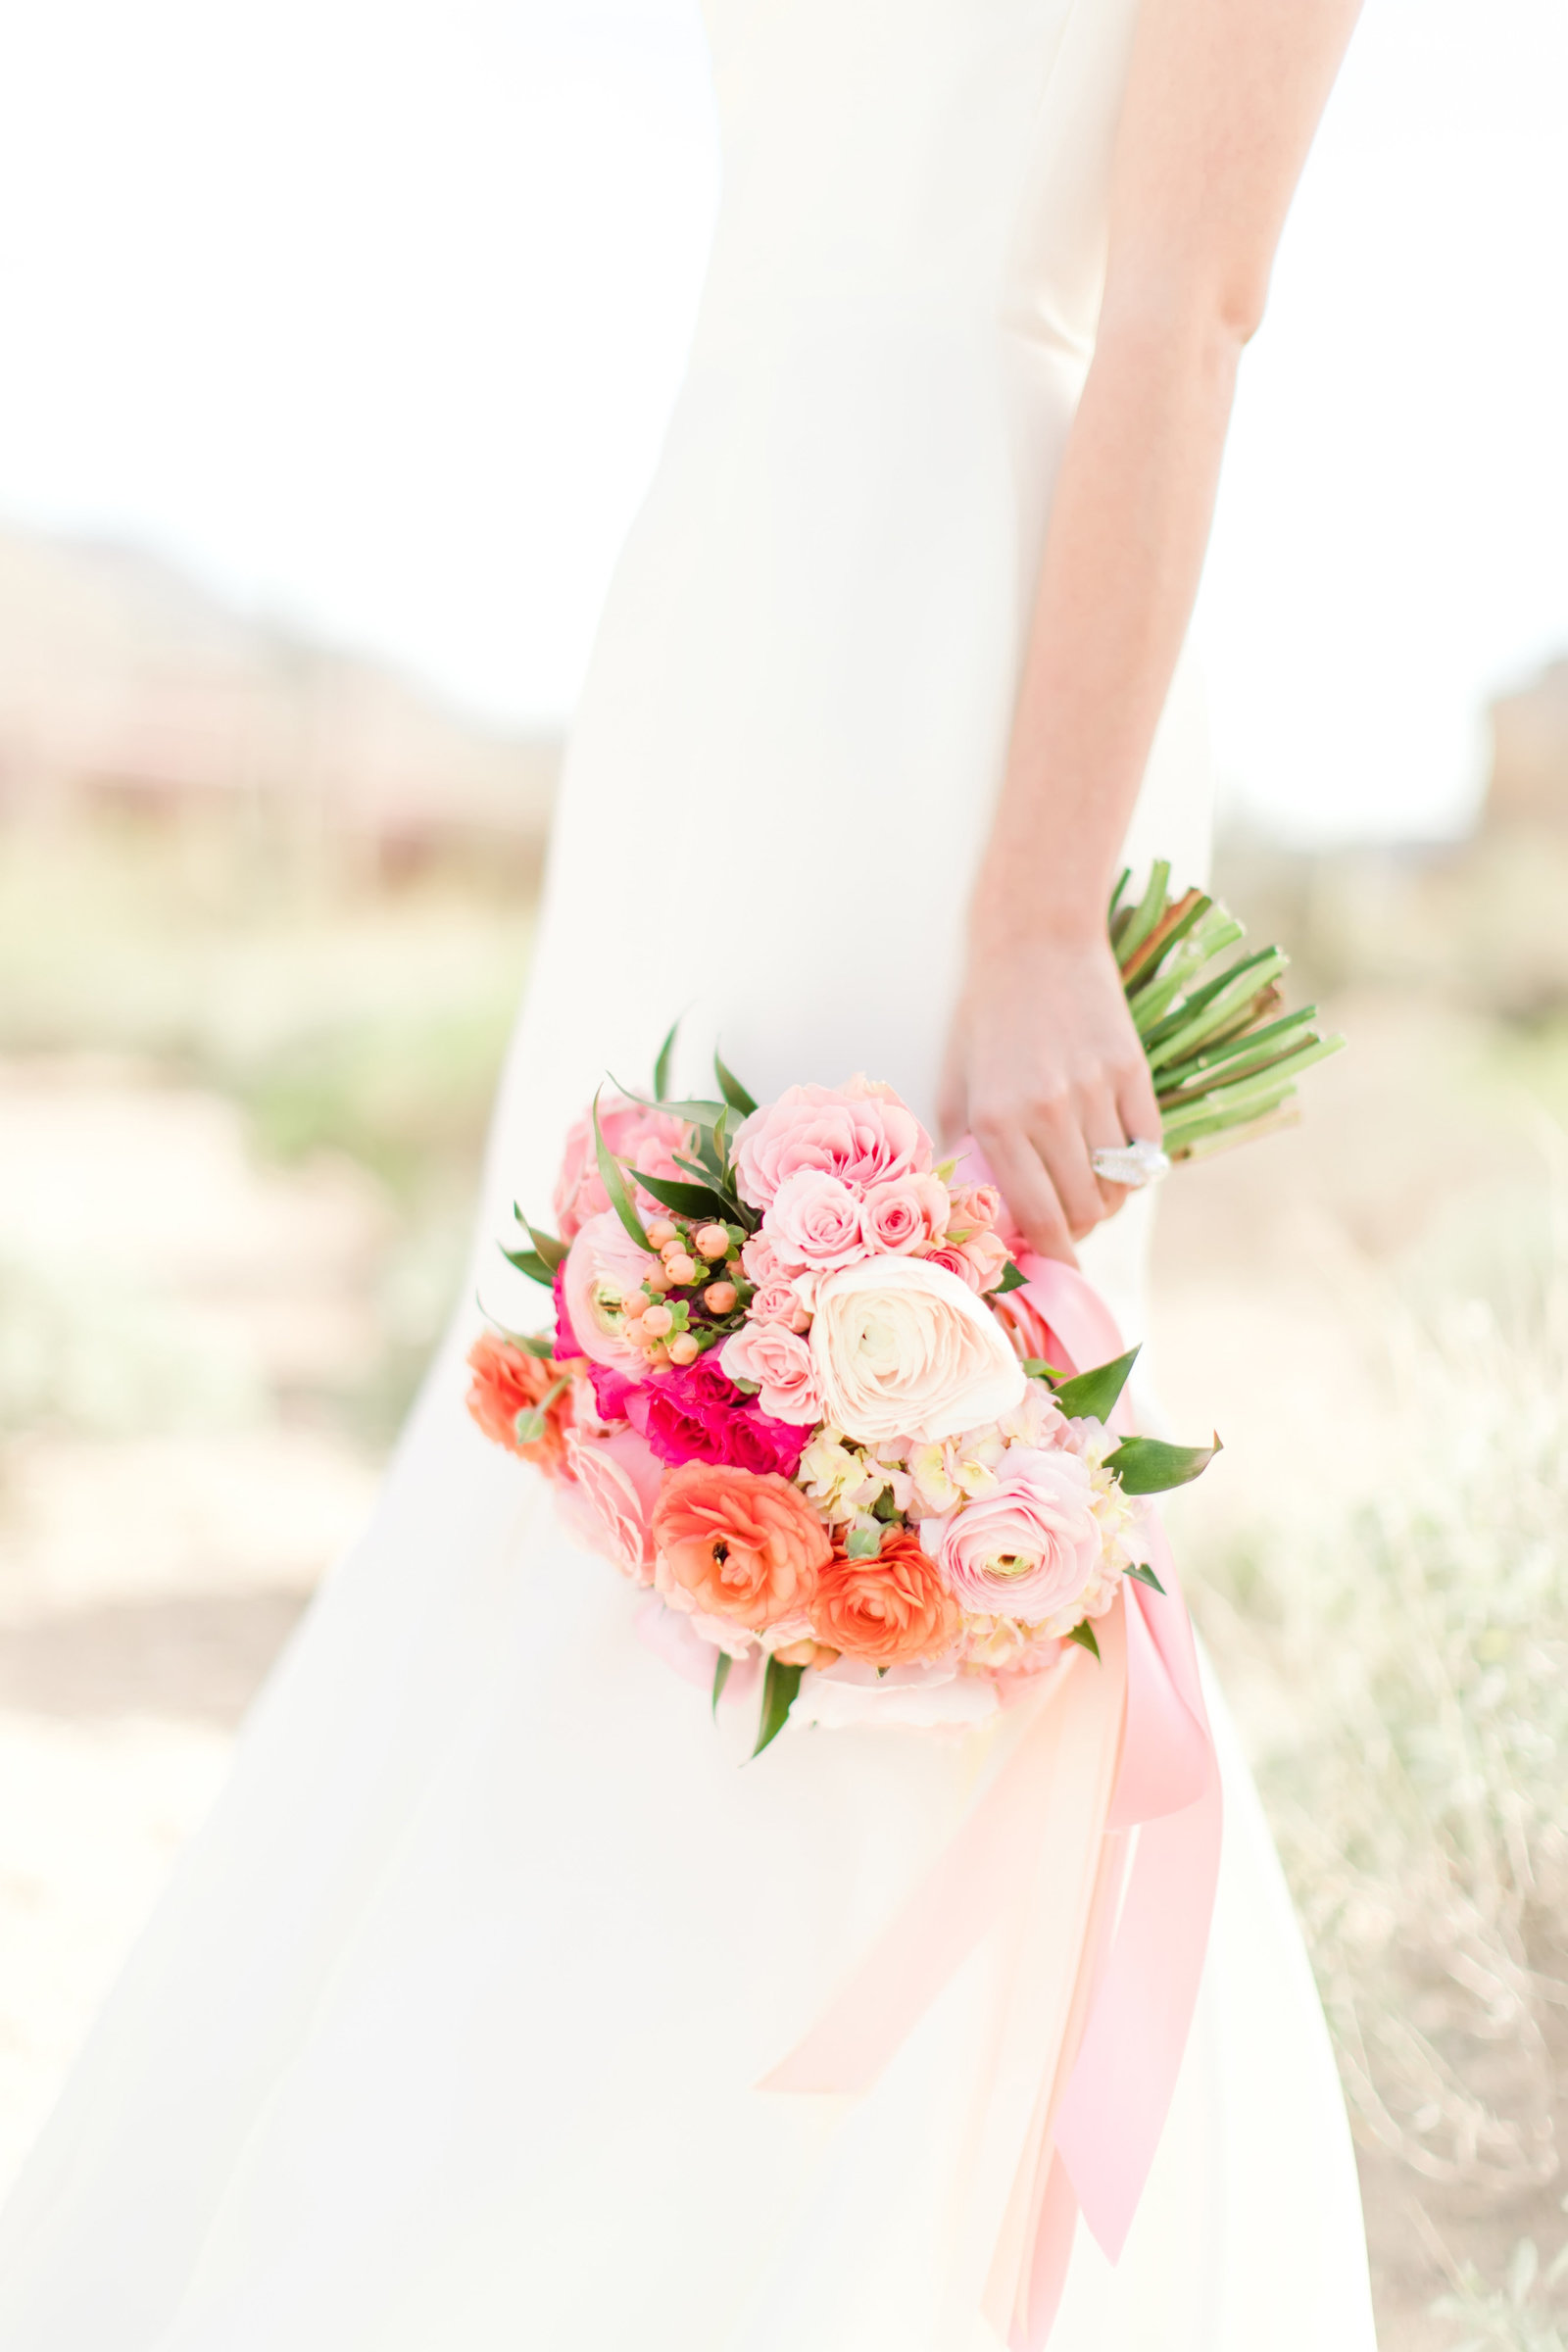 Your-Event-Florist-Arizona-Wedding-Flowers38